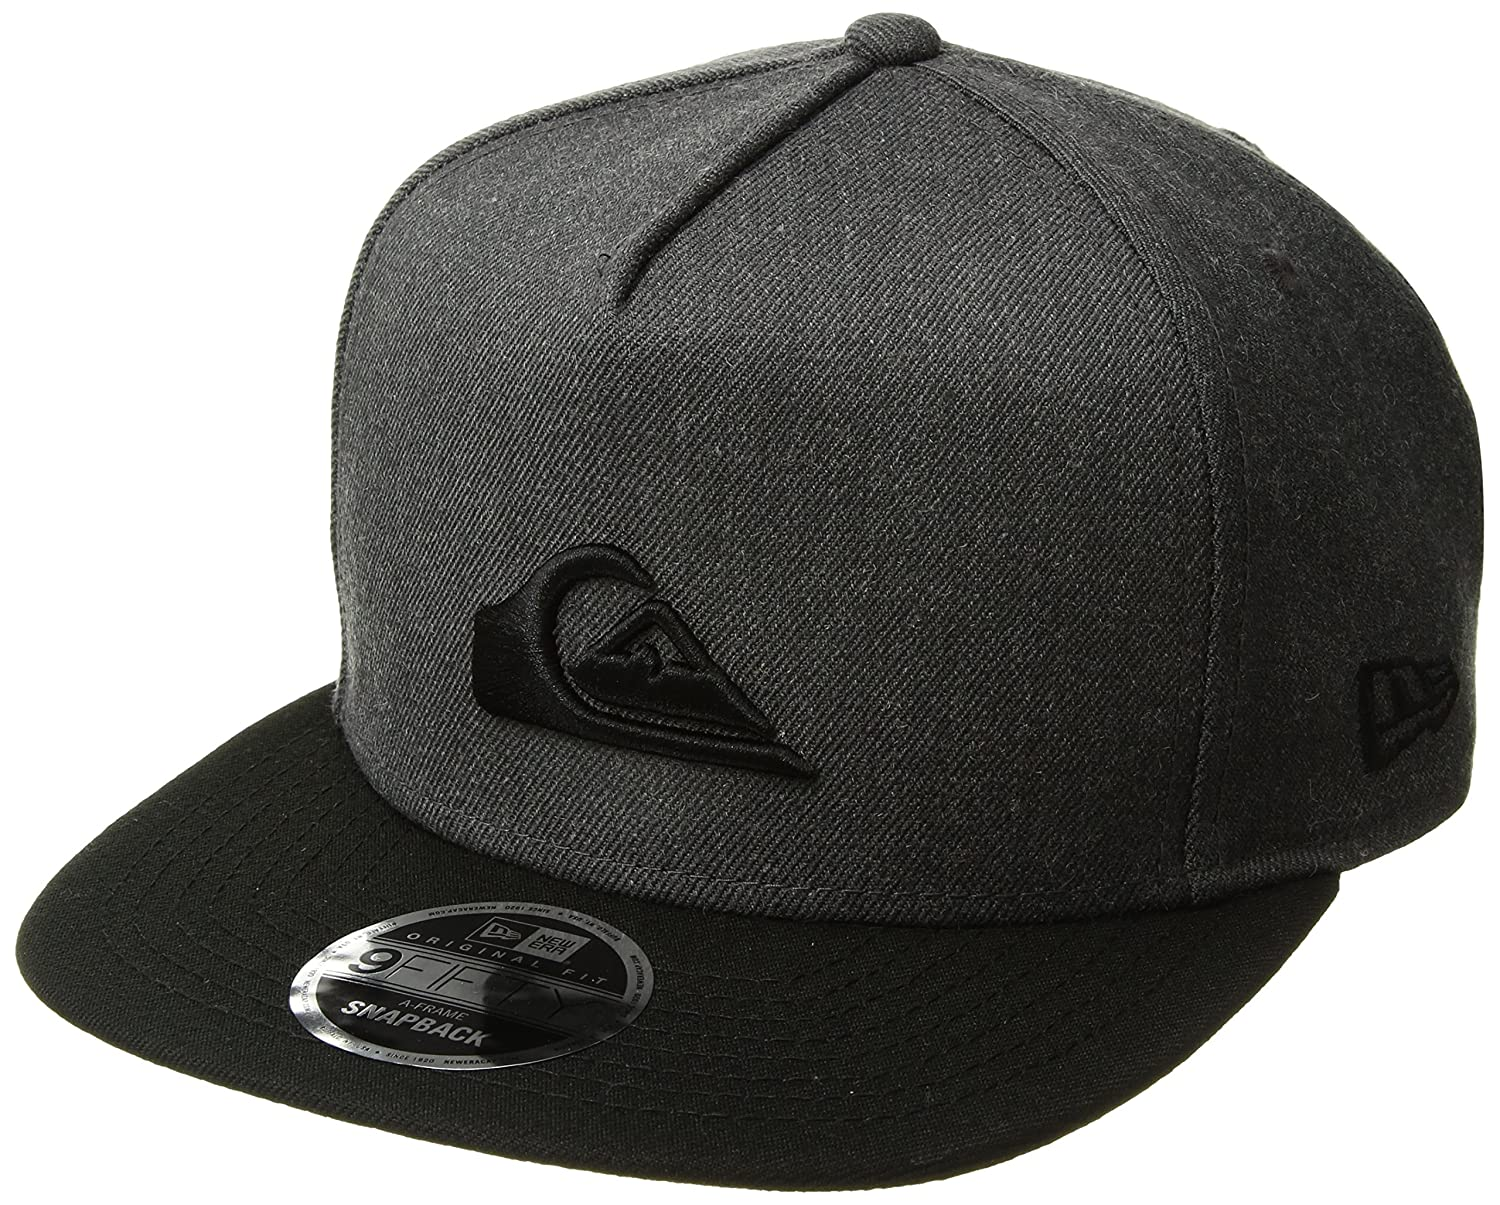 eec59d9e975698 Amazon.com: Quiksilver Men's Stuckles Snap Trucker Hat, Charcoal Heather  One Size: Clothing